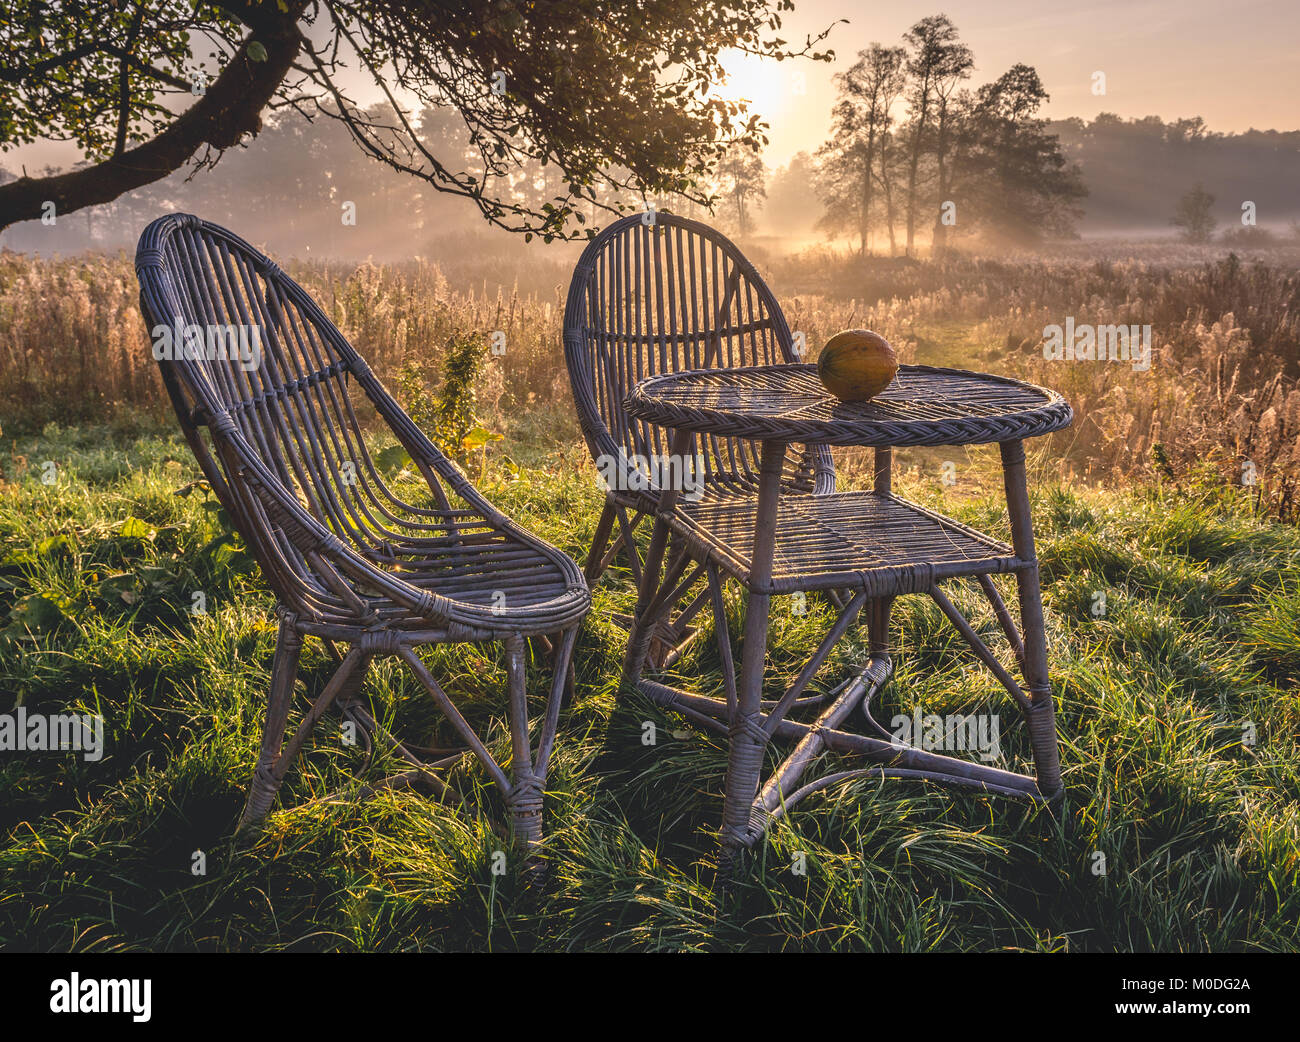 Morning in Gorki village, Sochaczew County on the edge of Kampinos Forest, large forests complex in Masovian Voivodeship - Stock Image